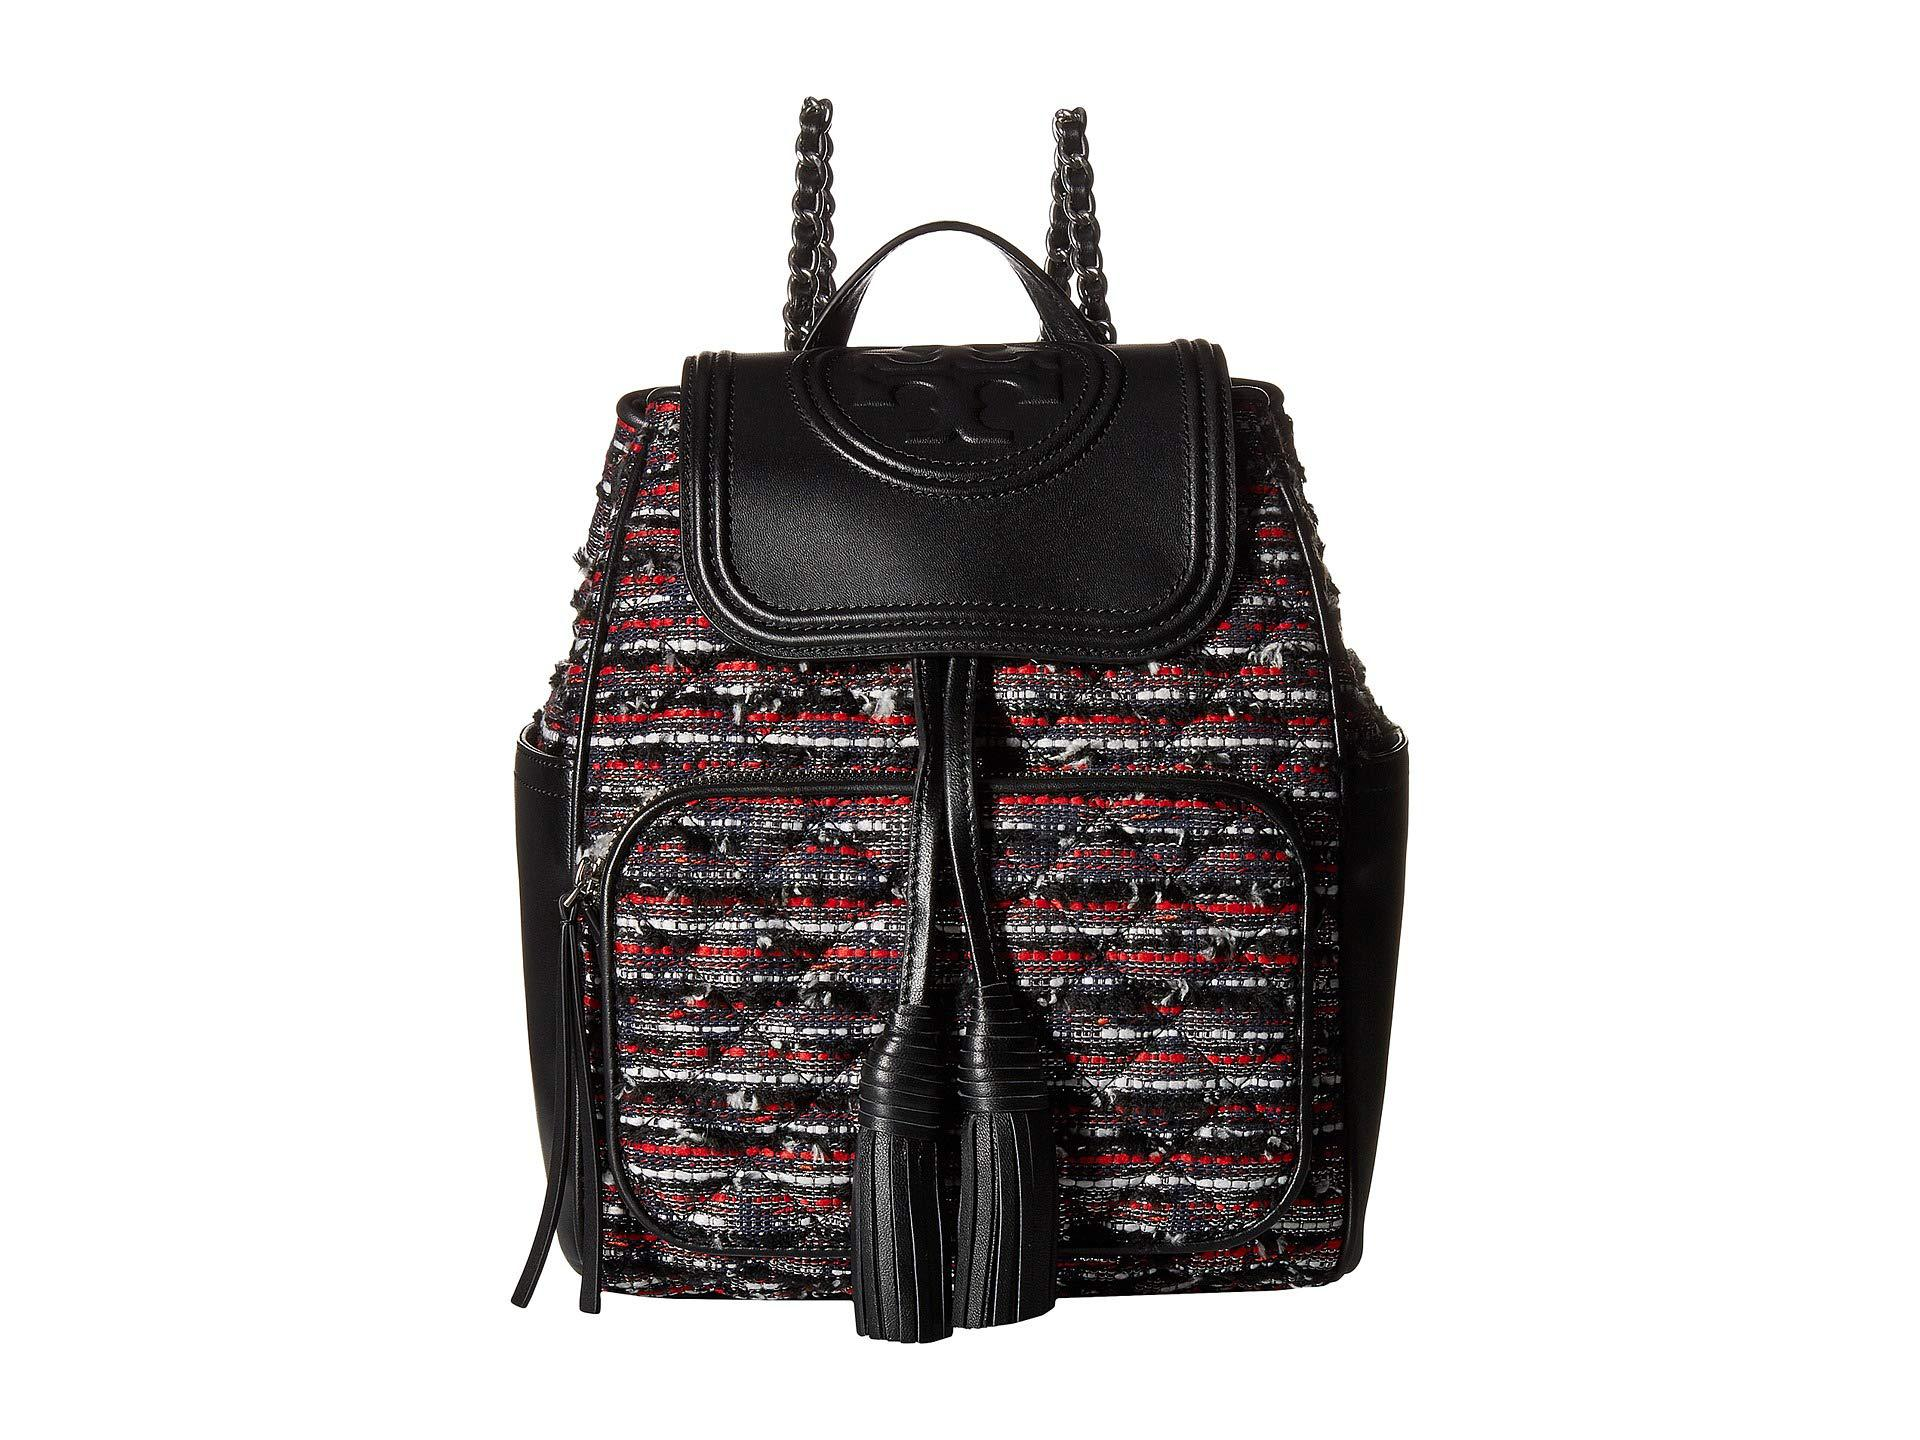 9a35ebd40e3 Lyst - Tory Burch Fleming Tweed Backpack in Black - Save 57%